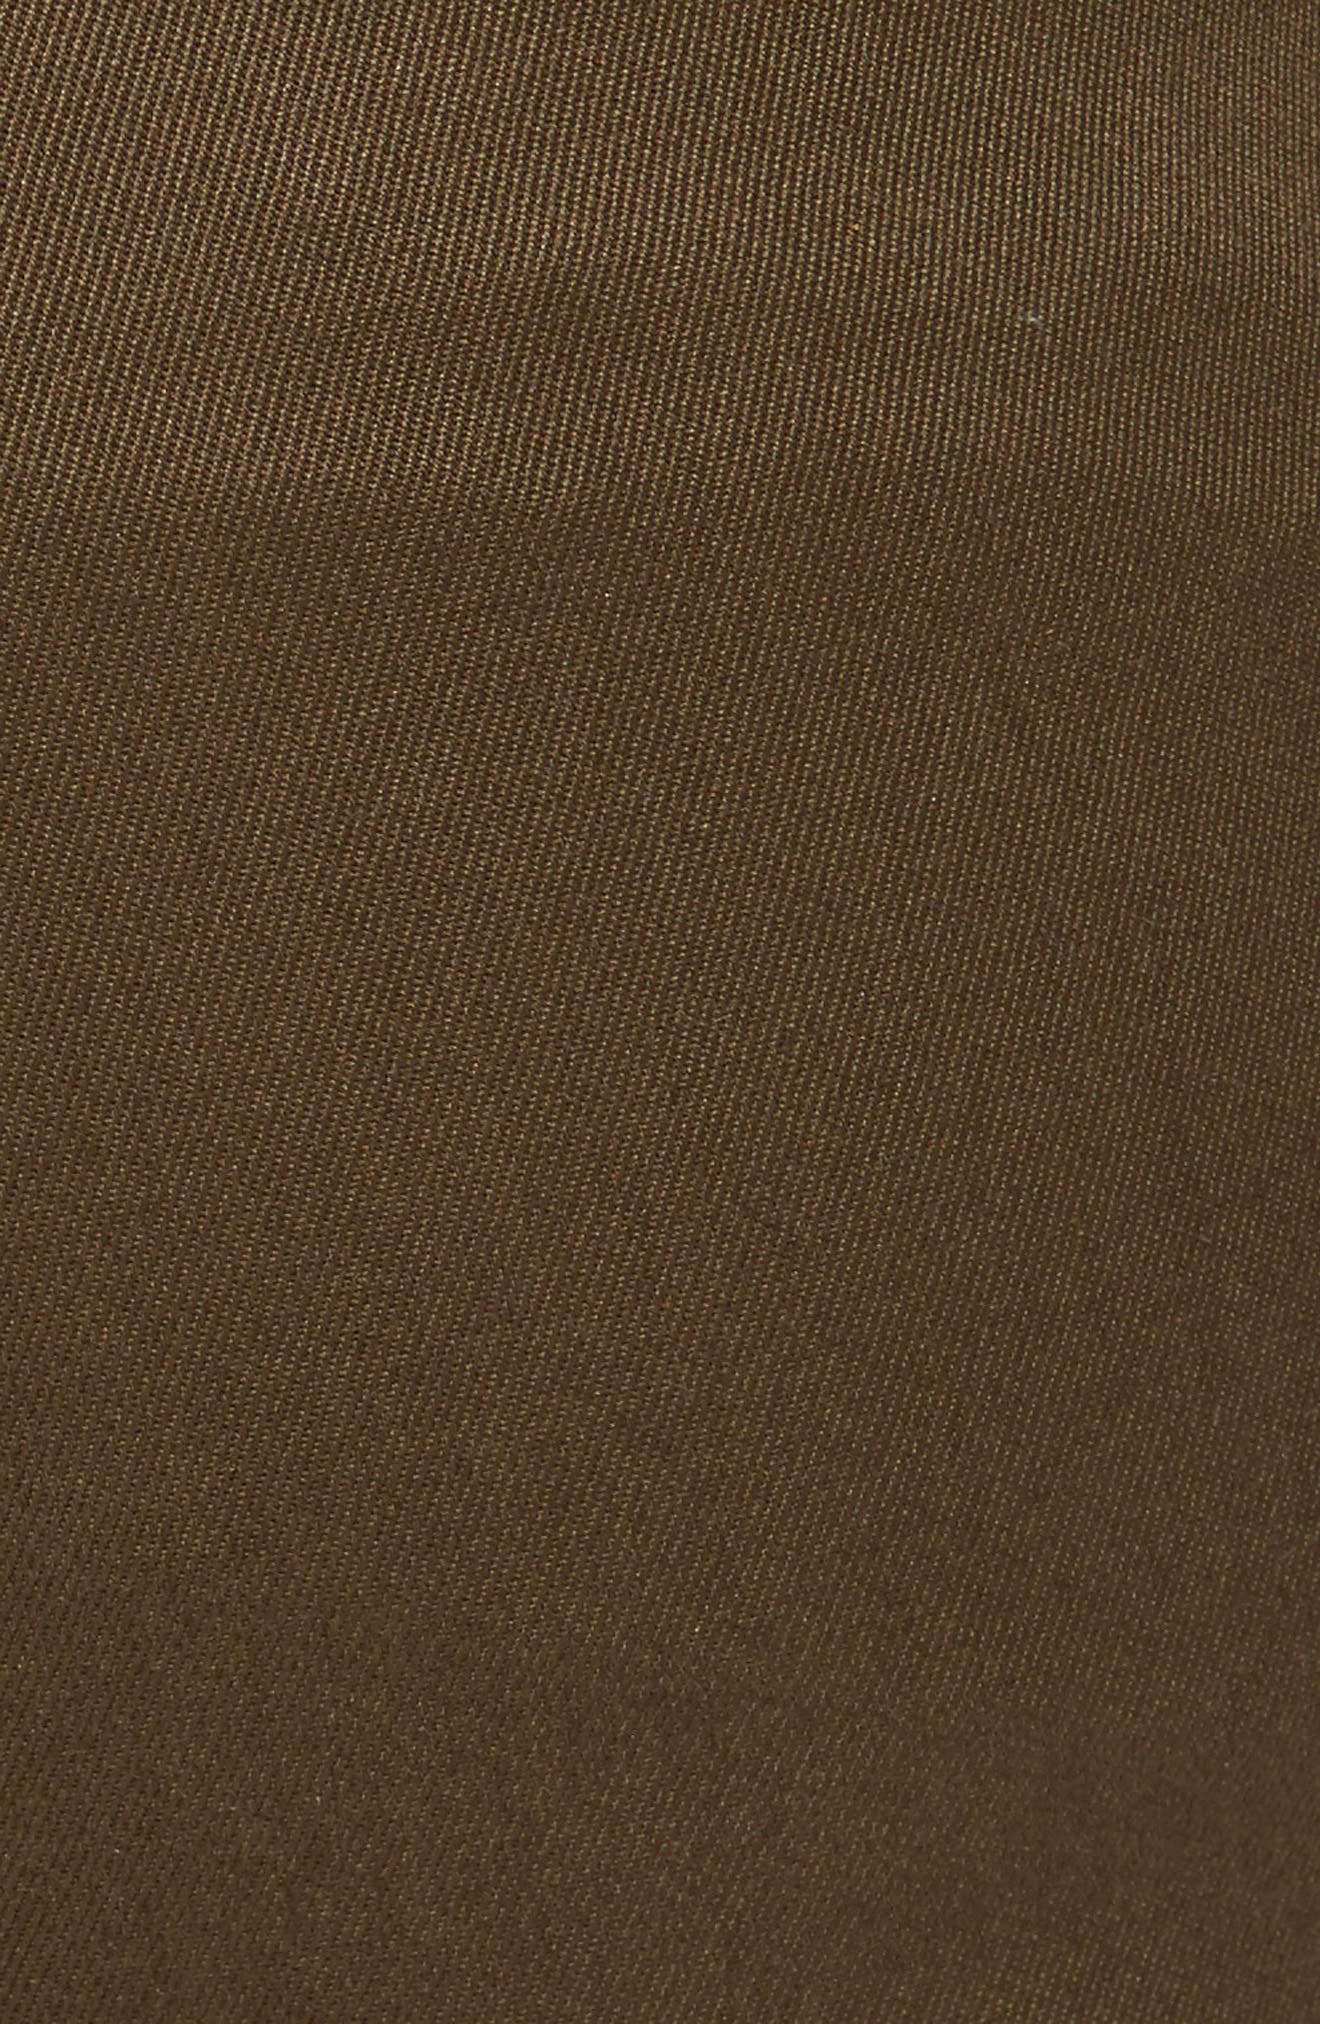 Tapered Leg Chinos,                             Alternate thumbnail 5, color,                             250